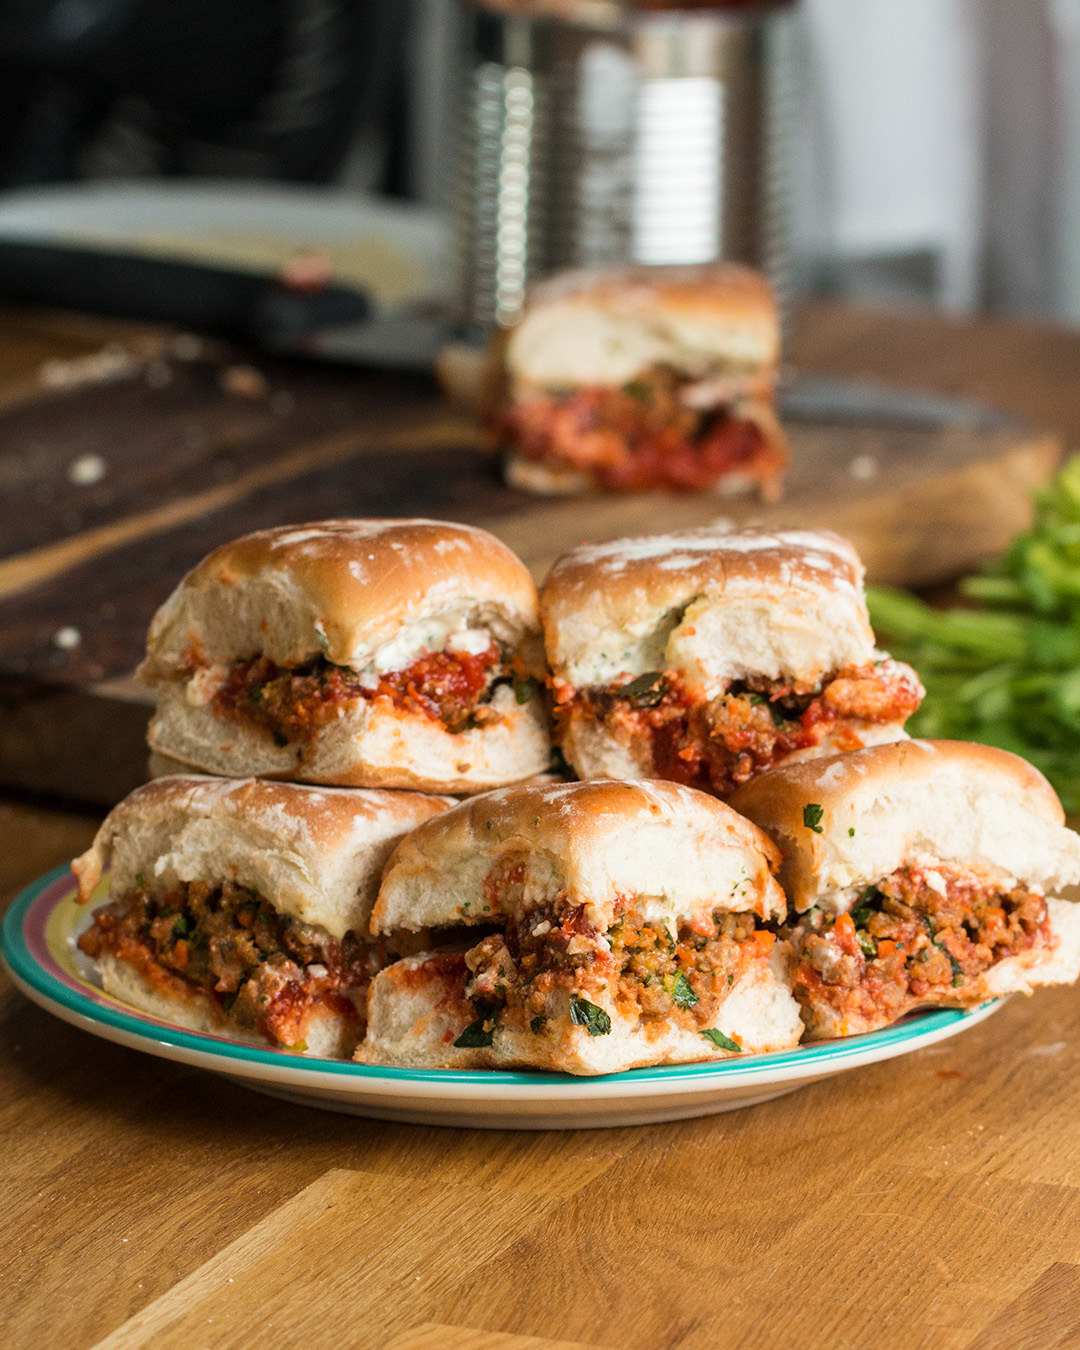 These Chorizo Meatball Sliders As Made By Aaron Sanchez Are Drool-Worthy